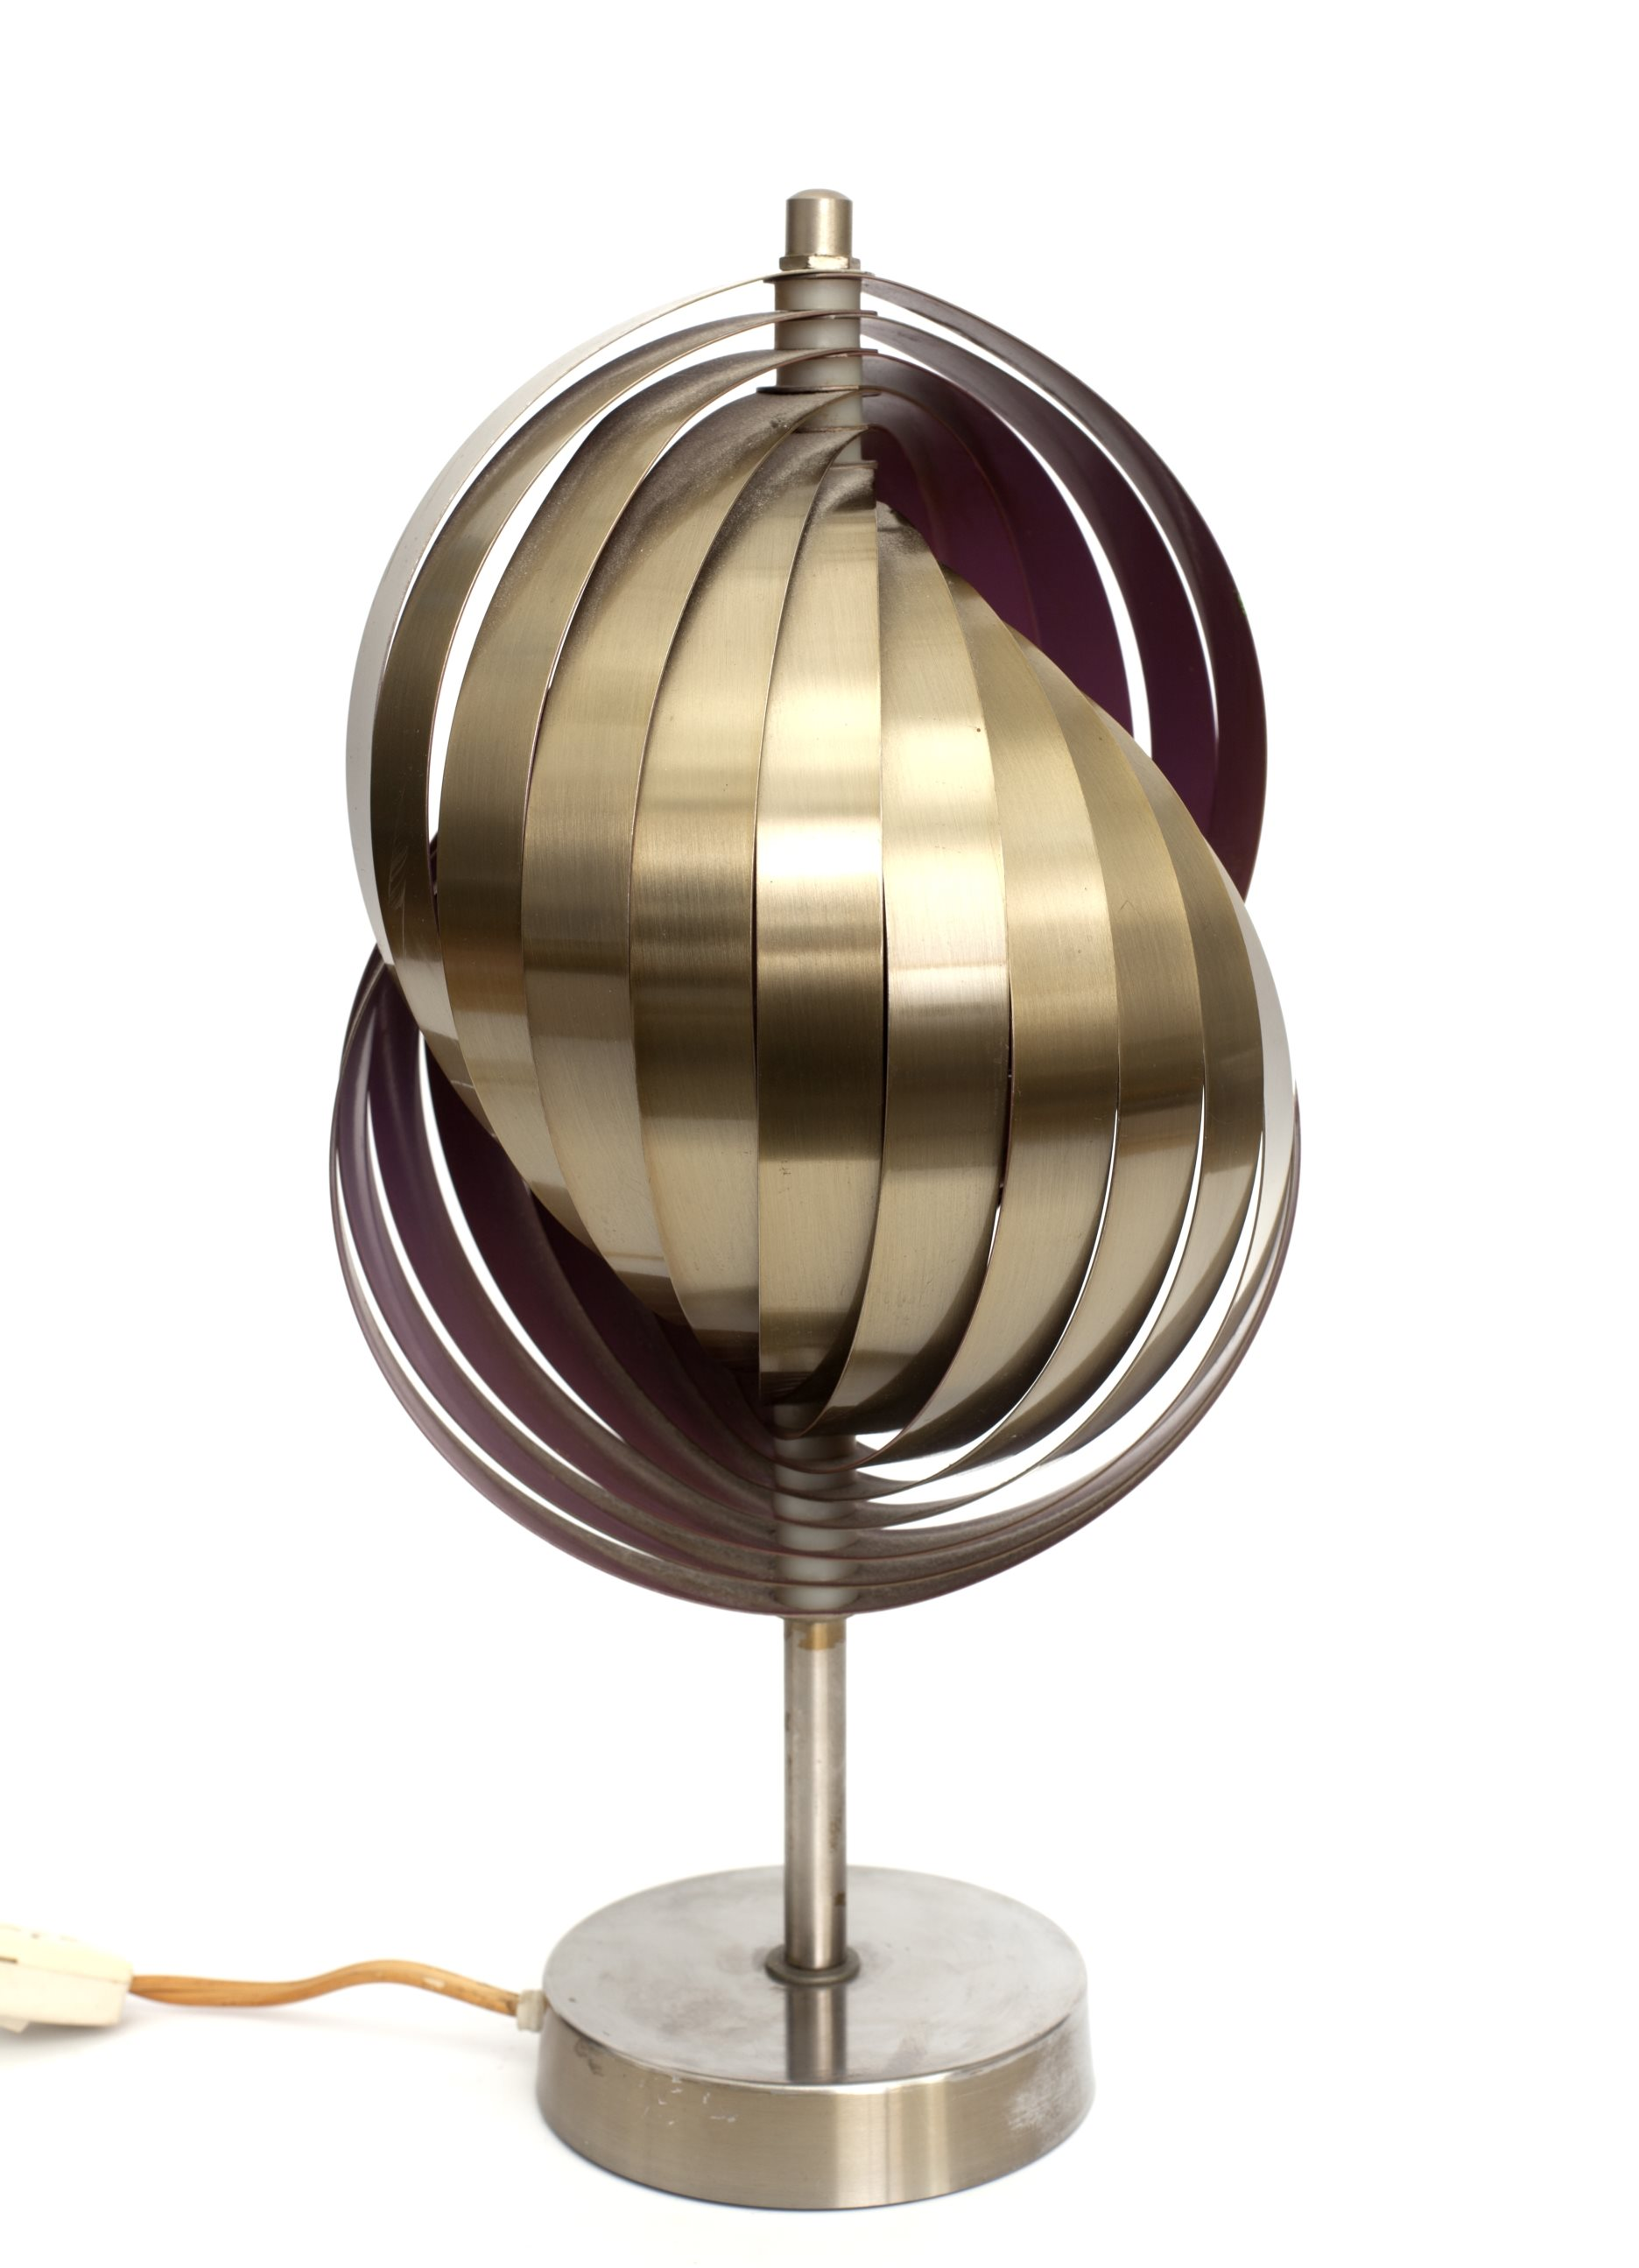 Henri Mathieu A metal spiral shell lamp, the inside lacquered in purple,1960s.